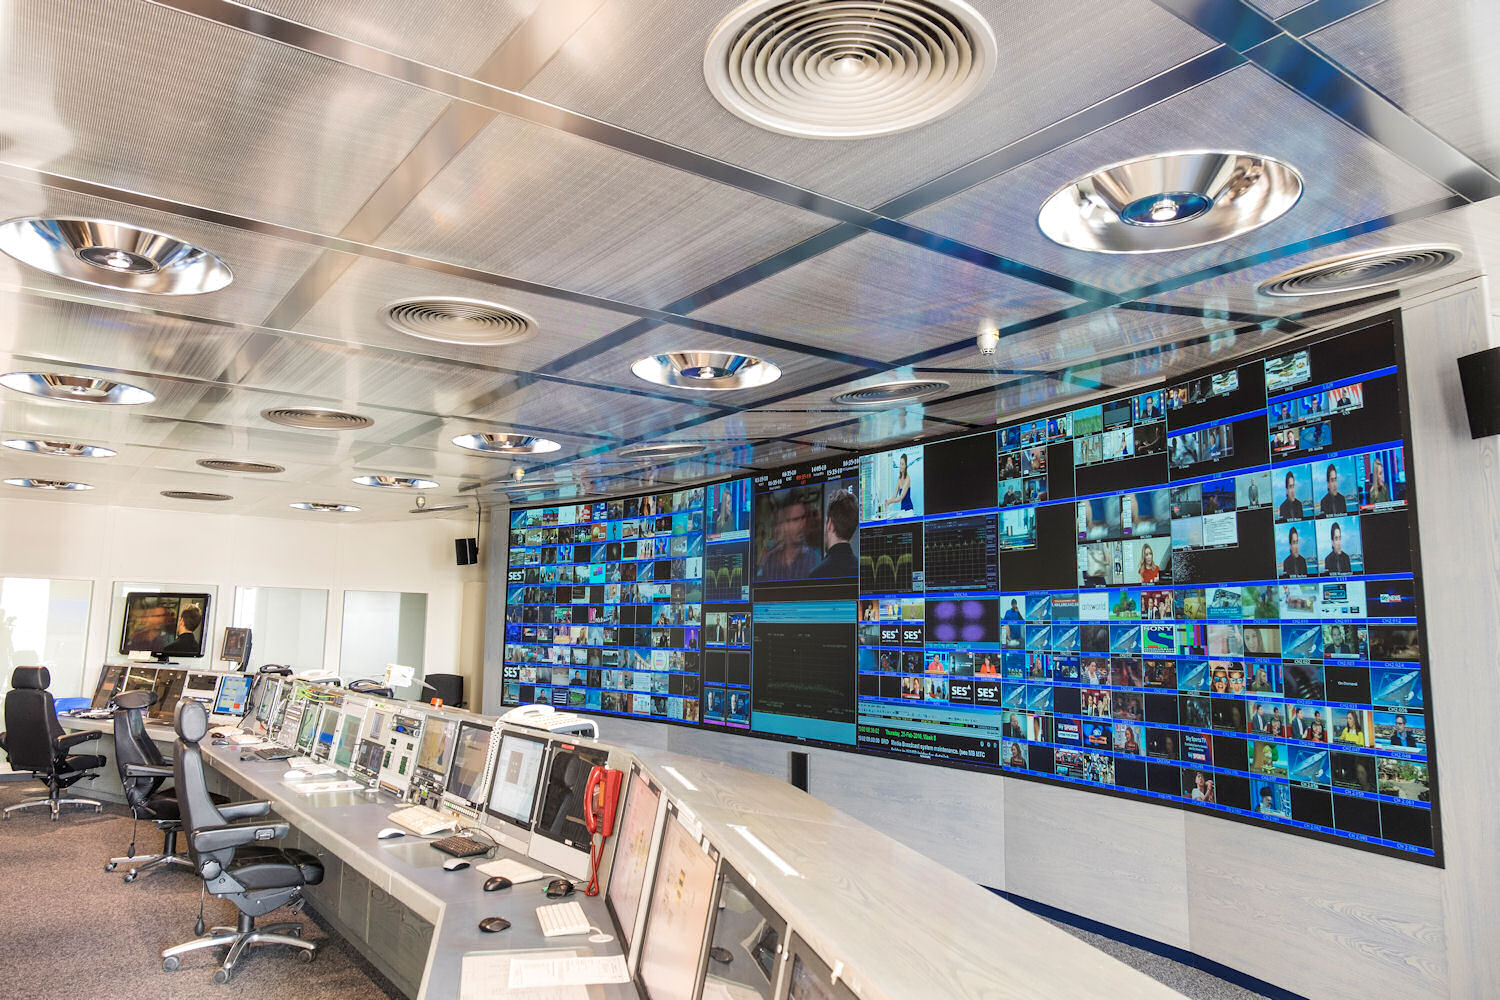 SES astra control room